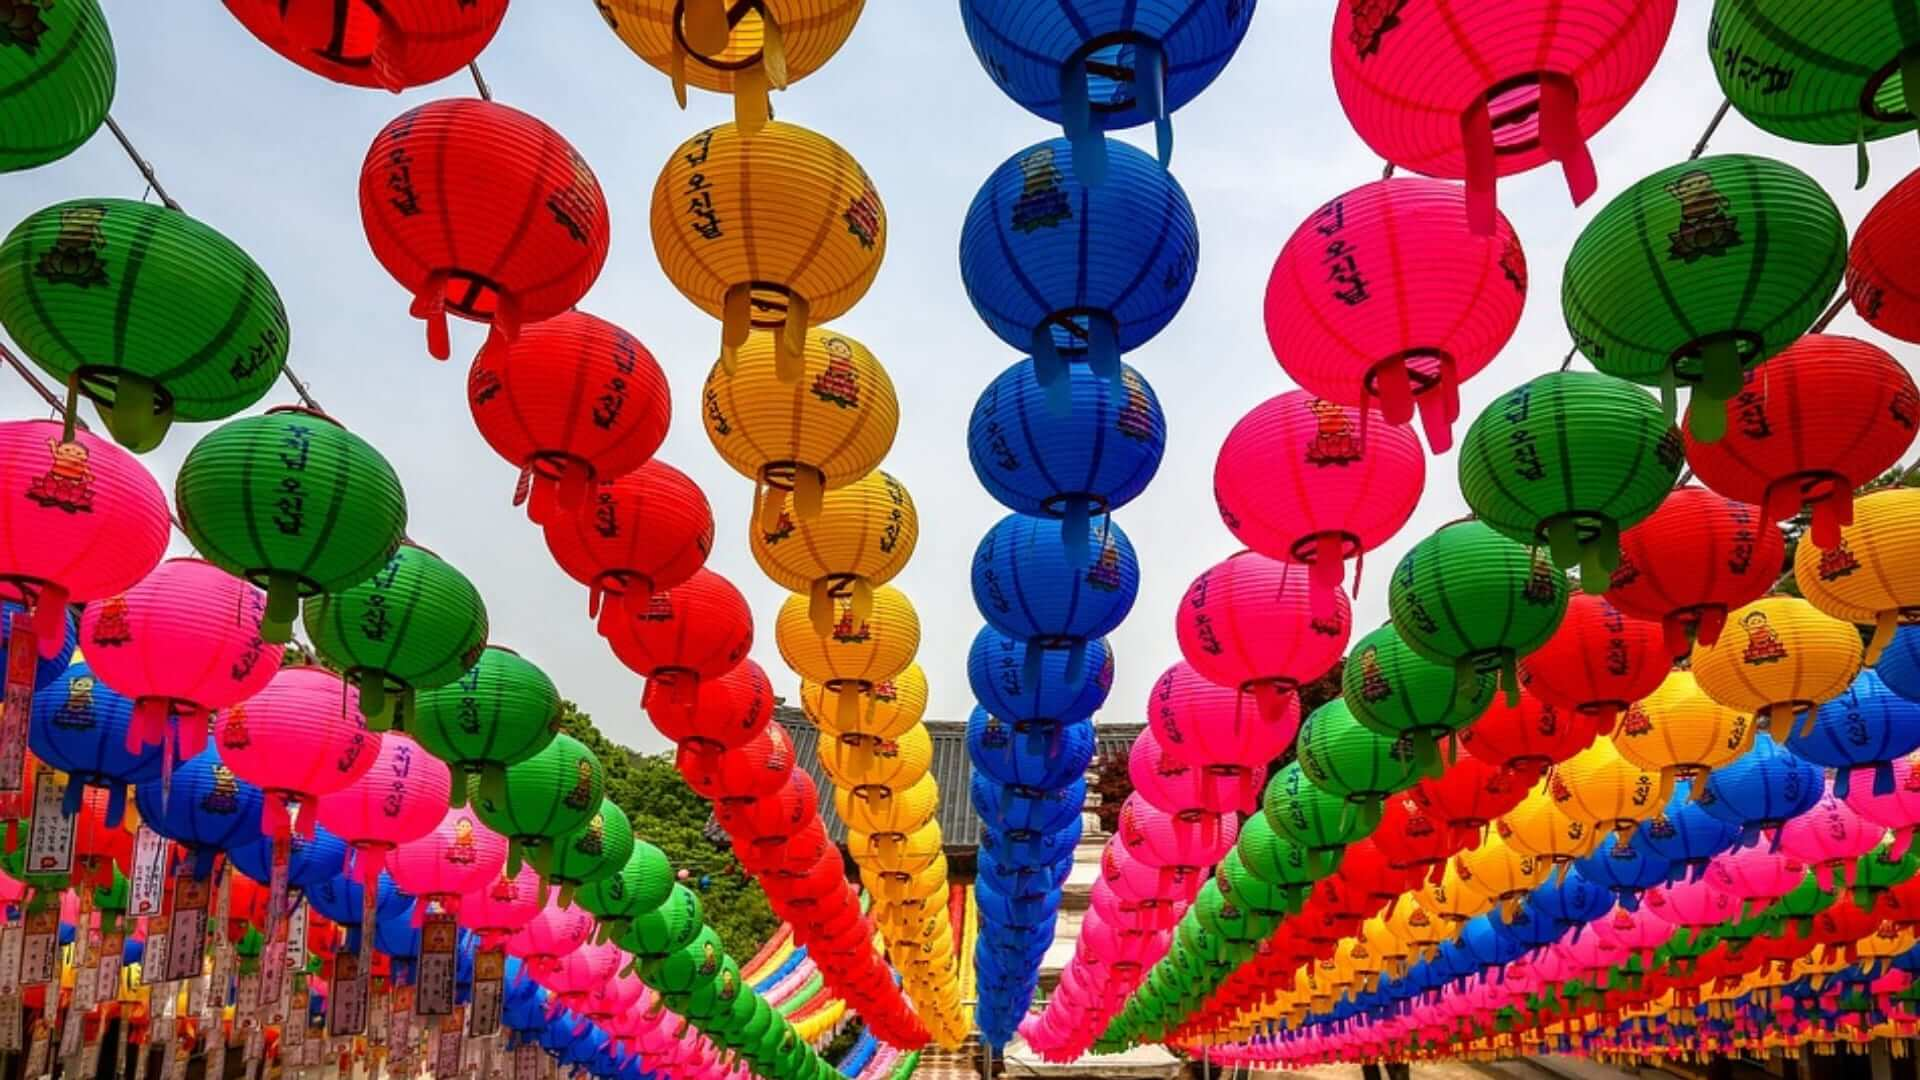 Many colored lanterns are hung up as decoration to celebrate the birthday of Buddha in South-Korea.